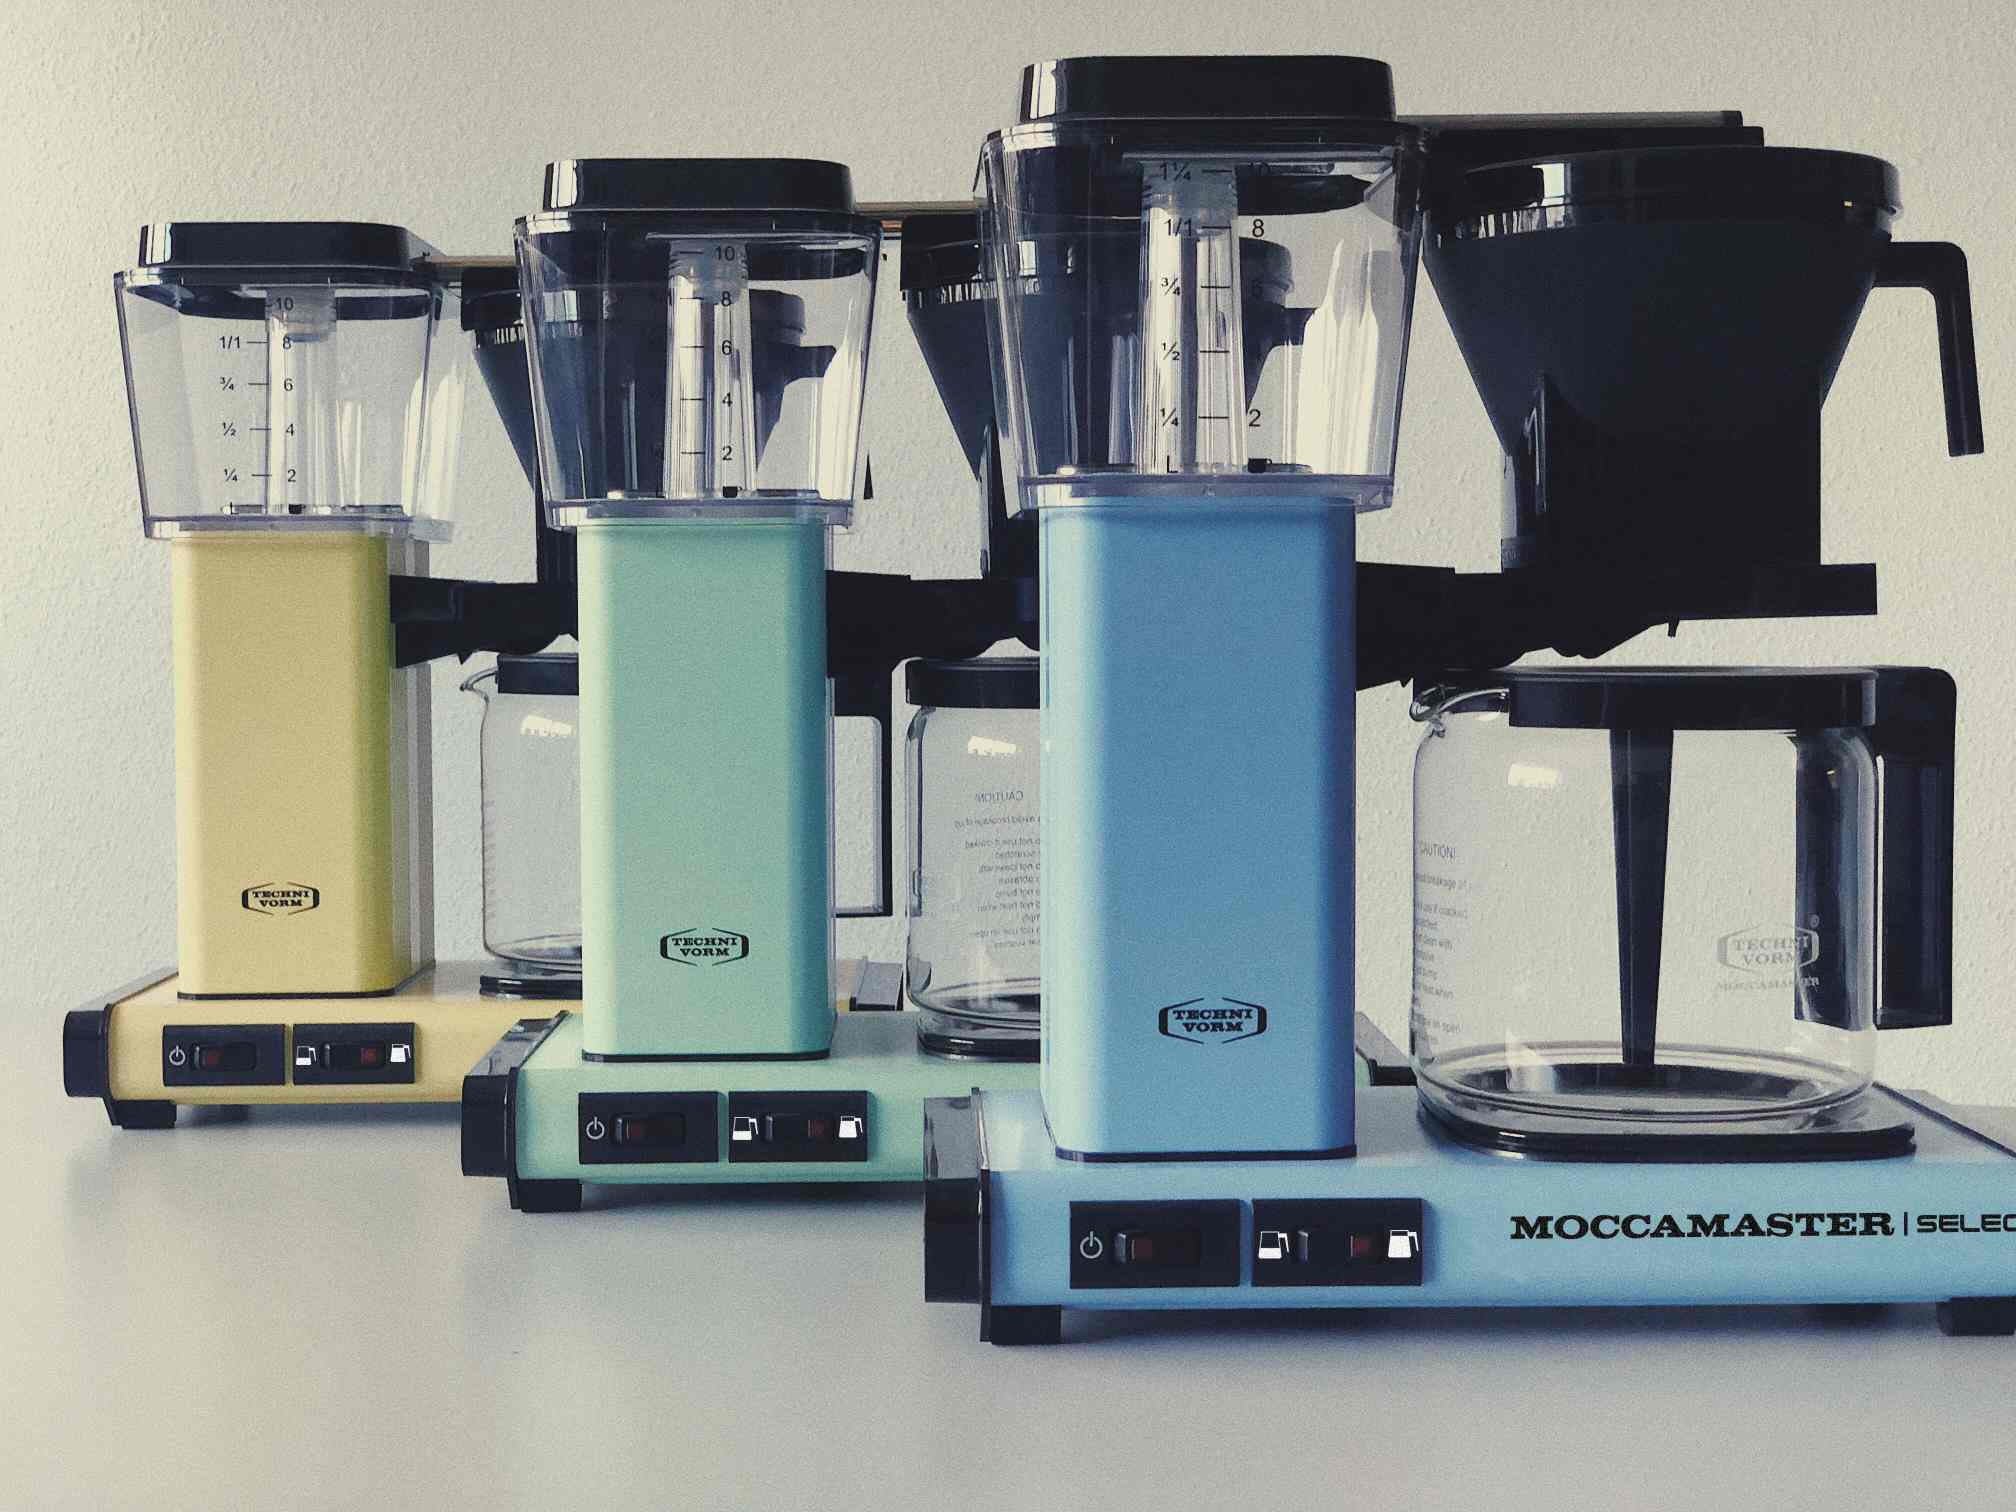 Moccamaster in Multiple Colors - Adsum